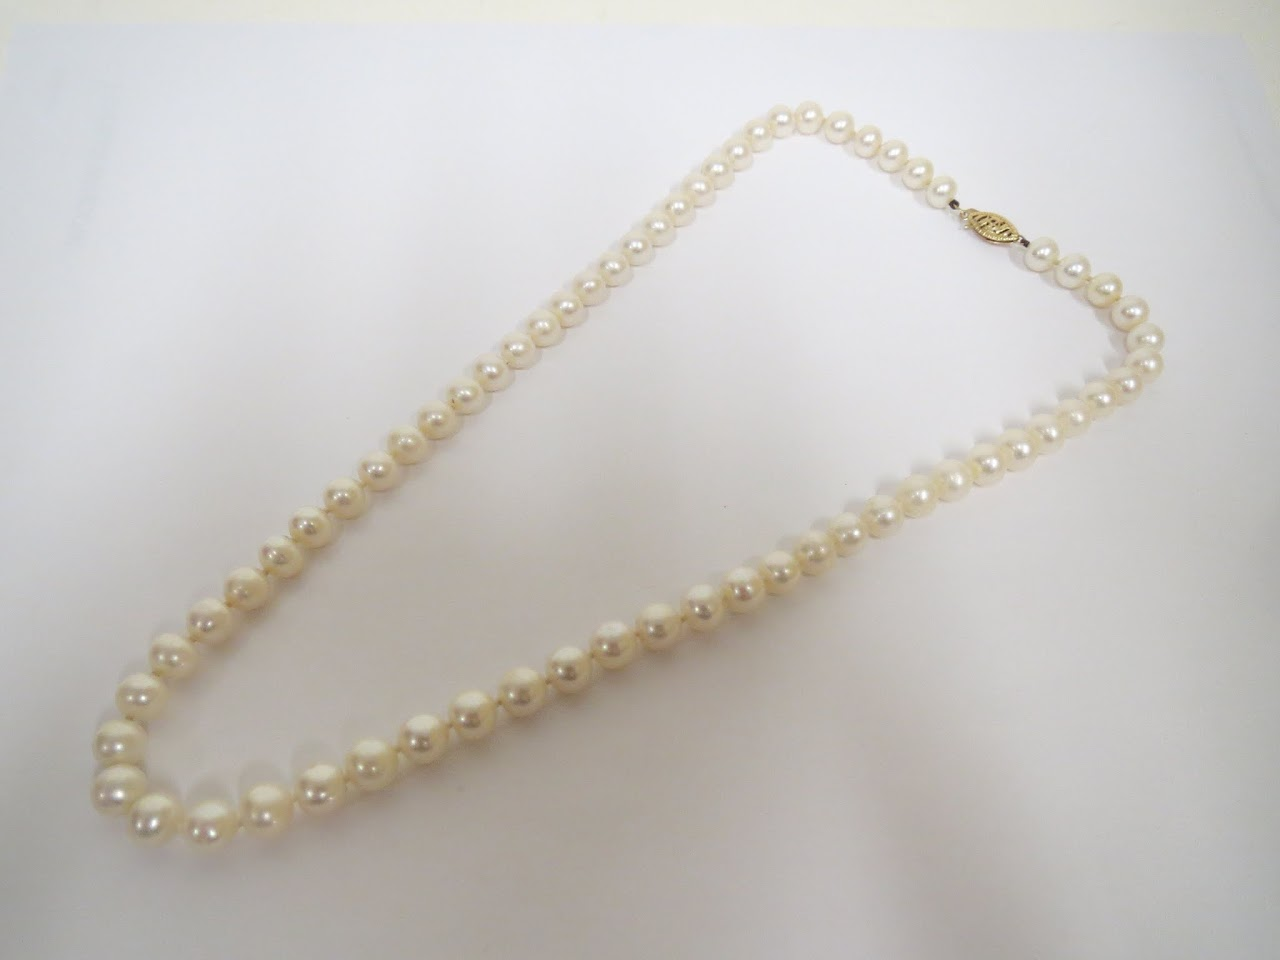 14kt and Pearl Necklace 2